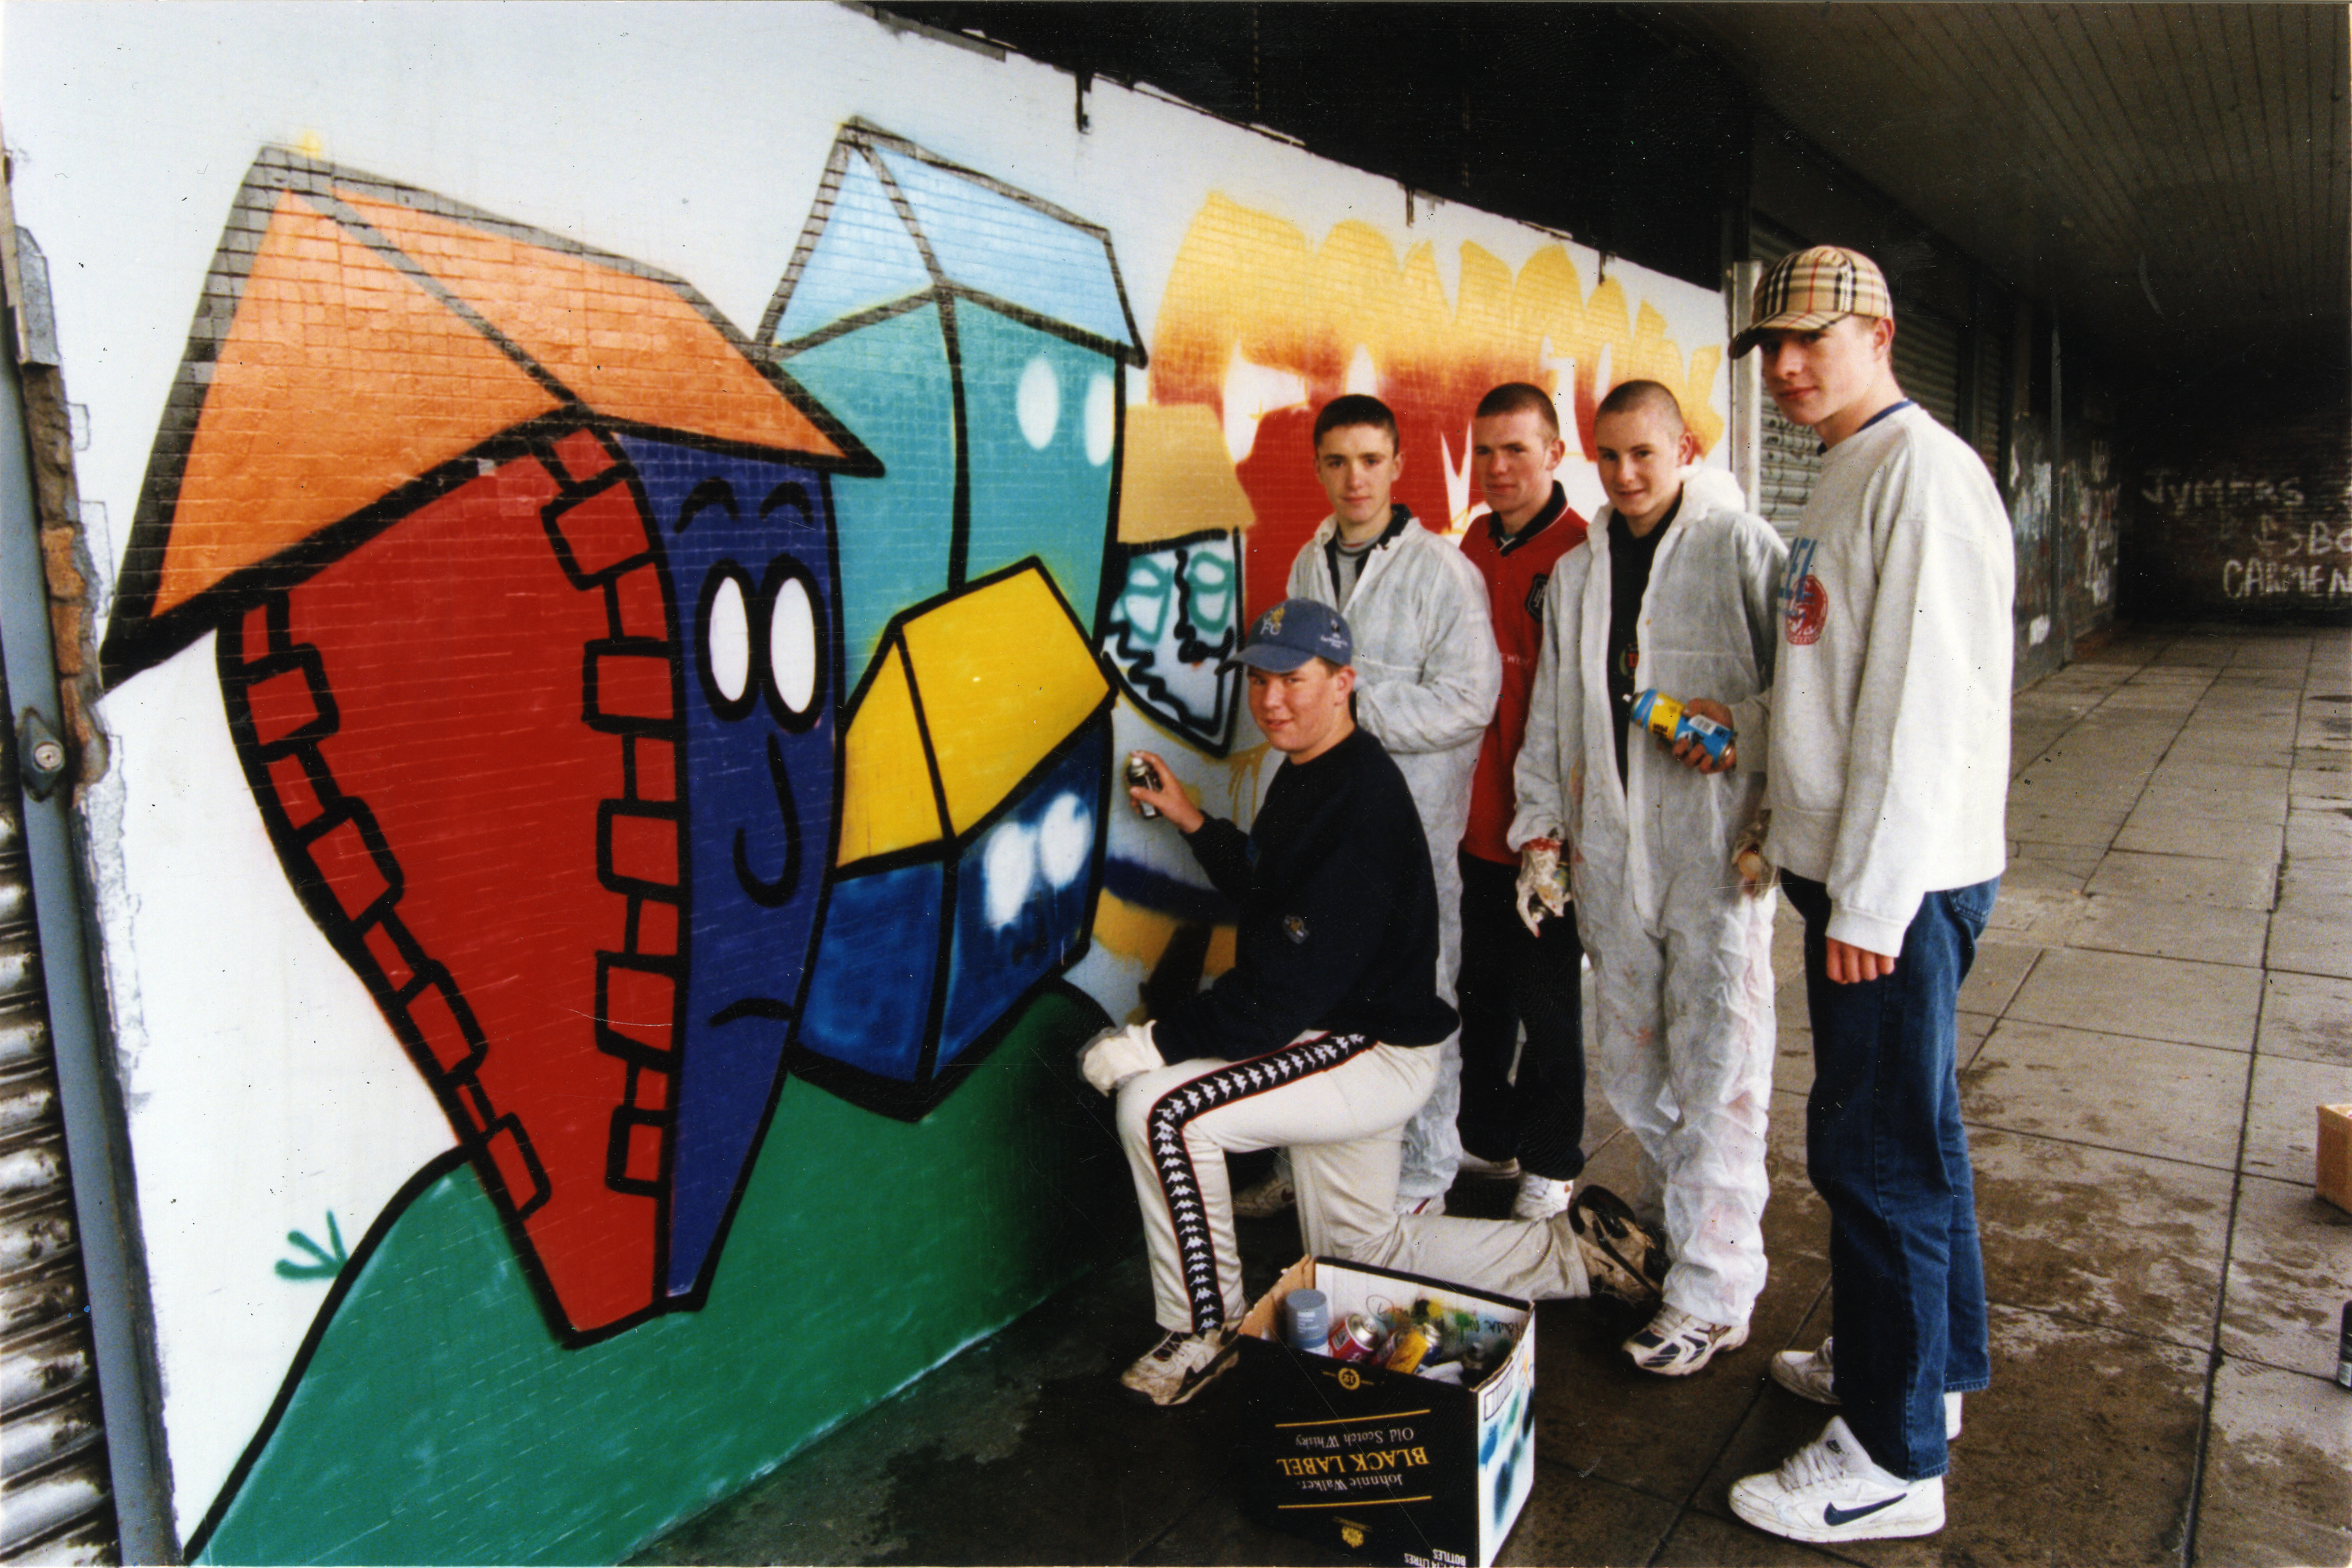 Graffiti artists paint the Happyhillock shops to deter youngsters from spraying walls. (October 1998)